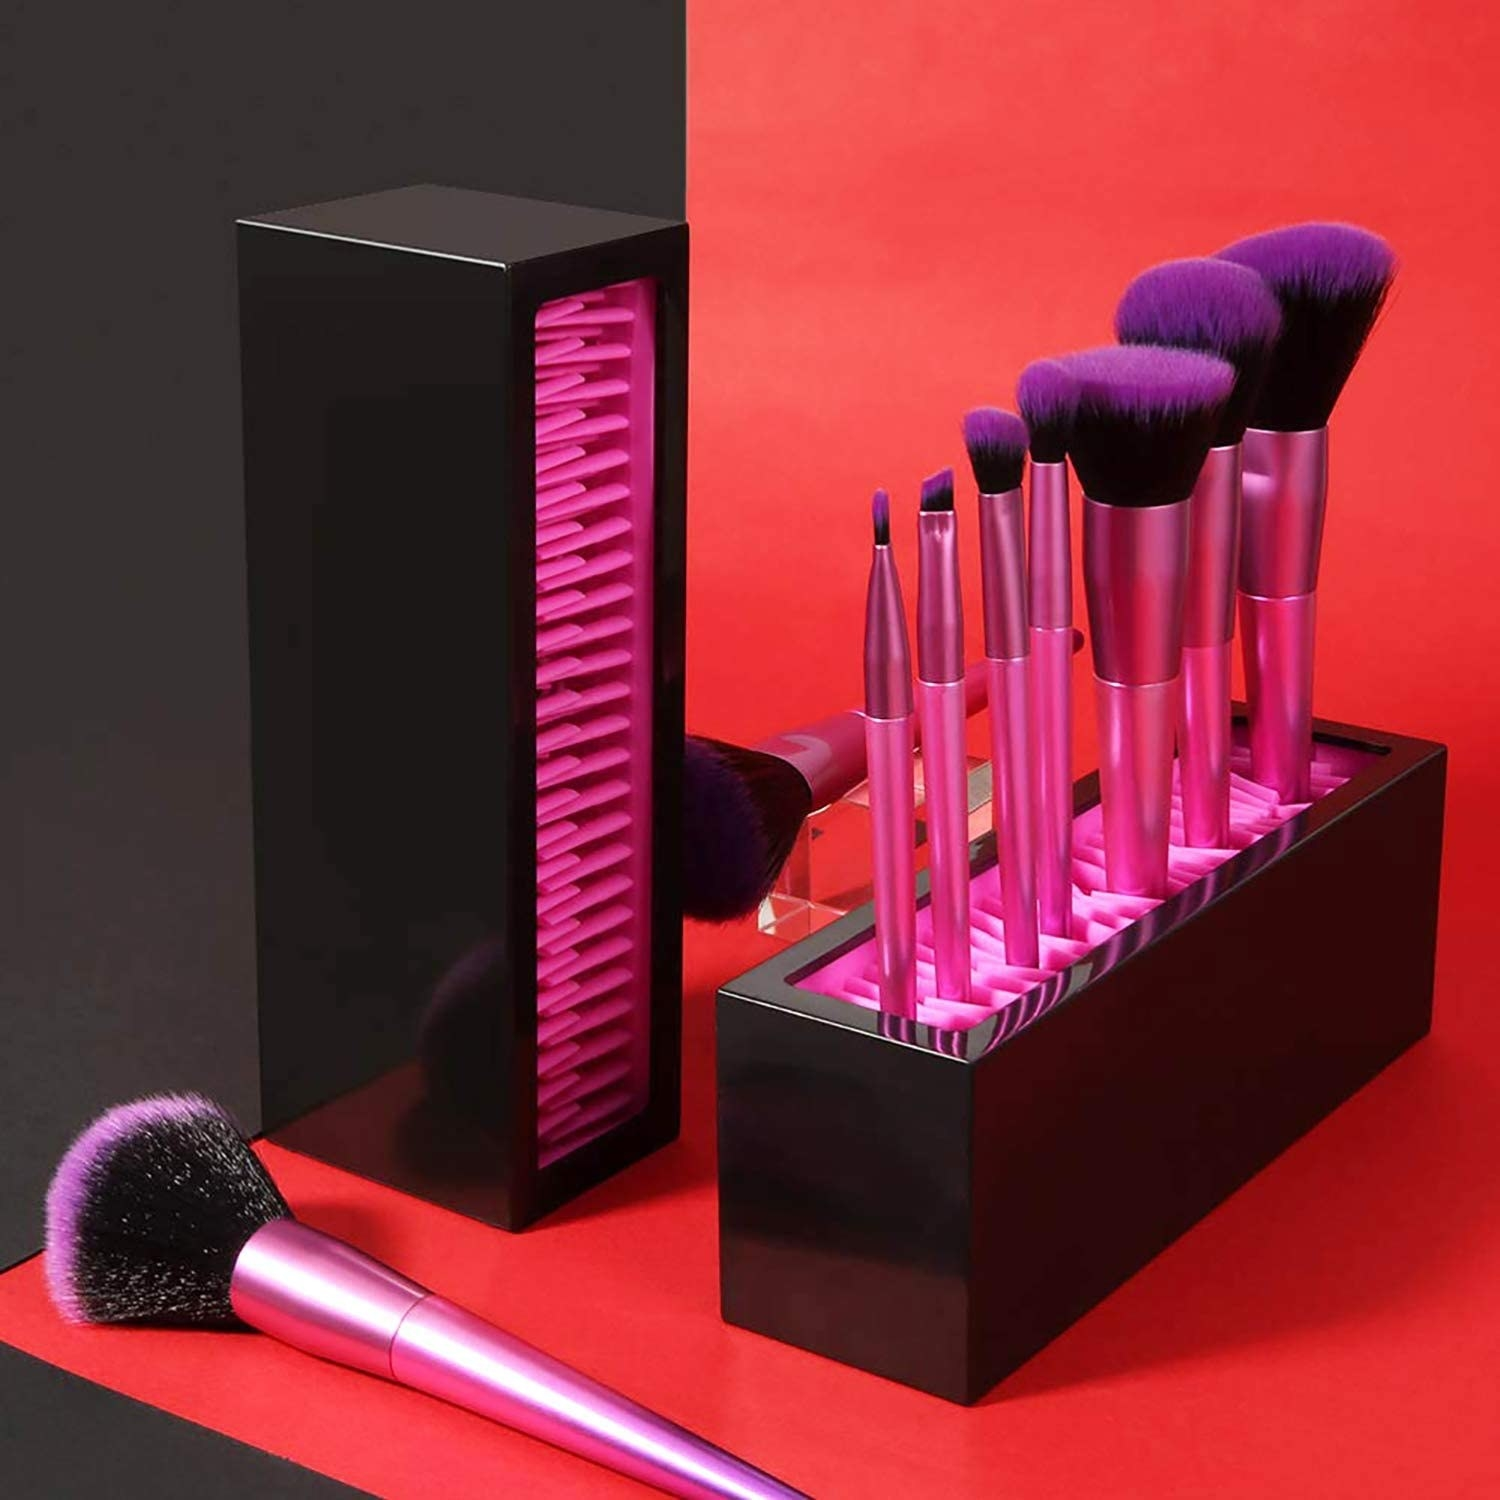 Makeup brushes standing up in the makeup brush organizer